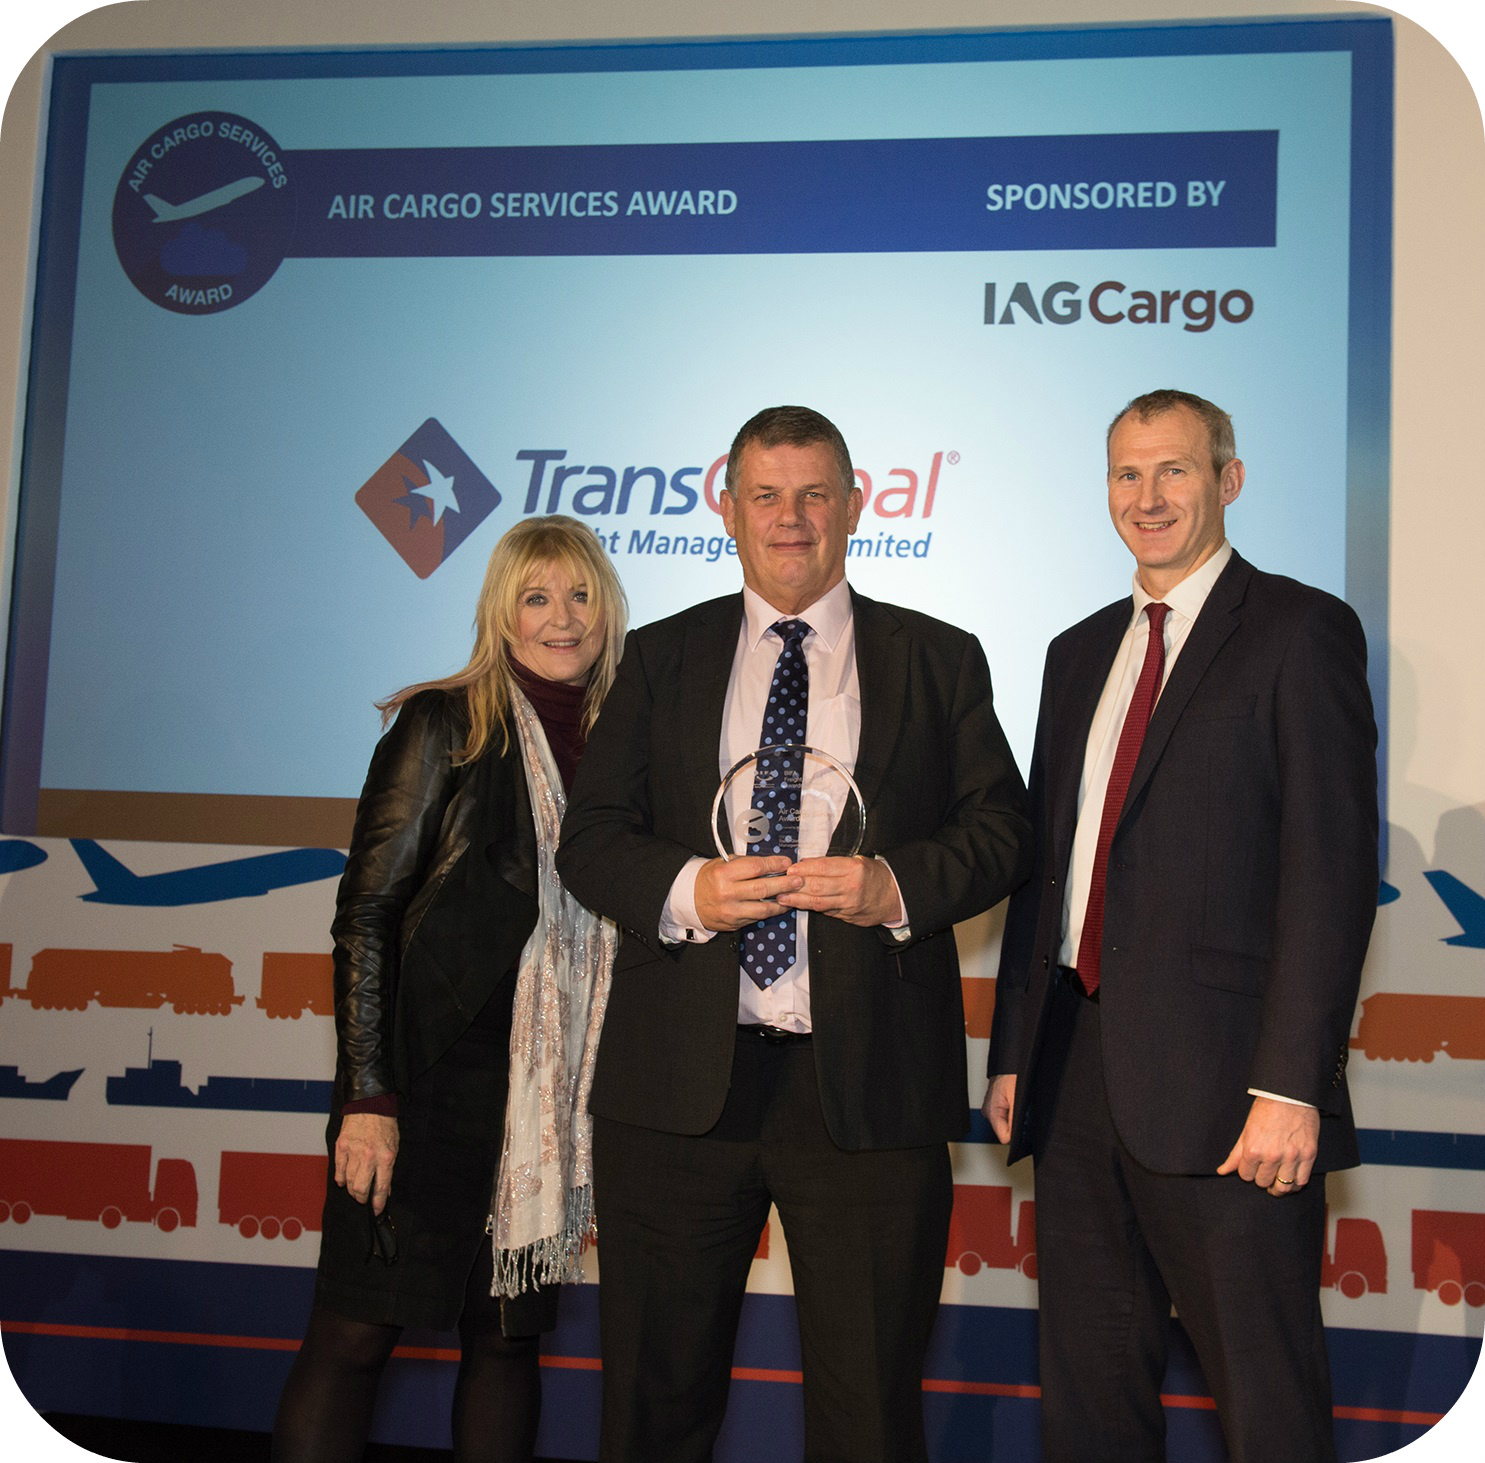 TransGlobal | Trans Global awarded with the AIR CARGO